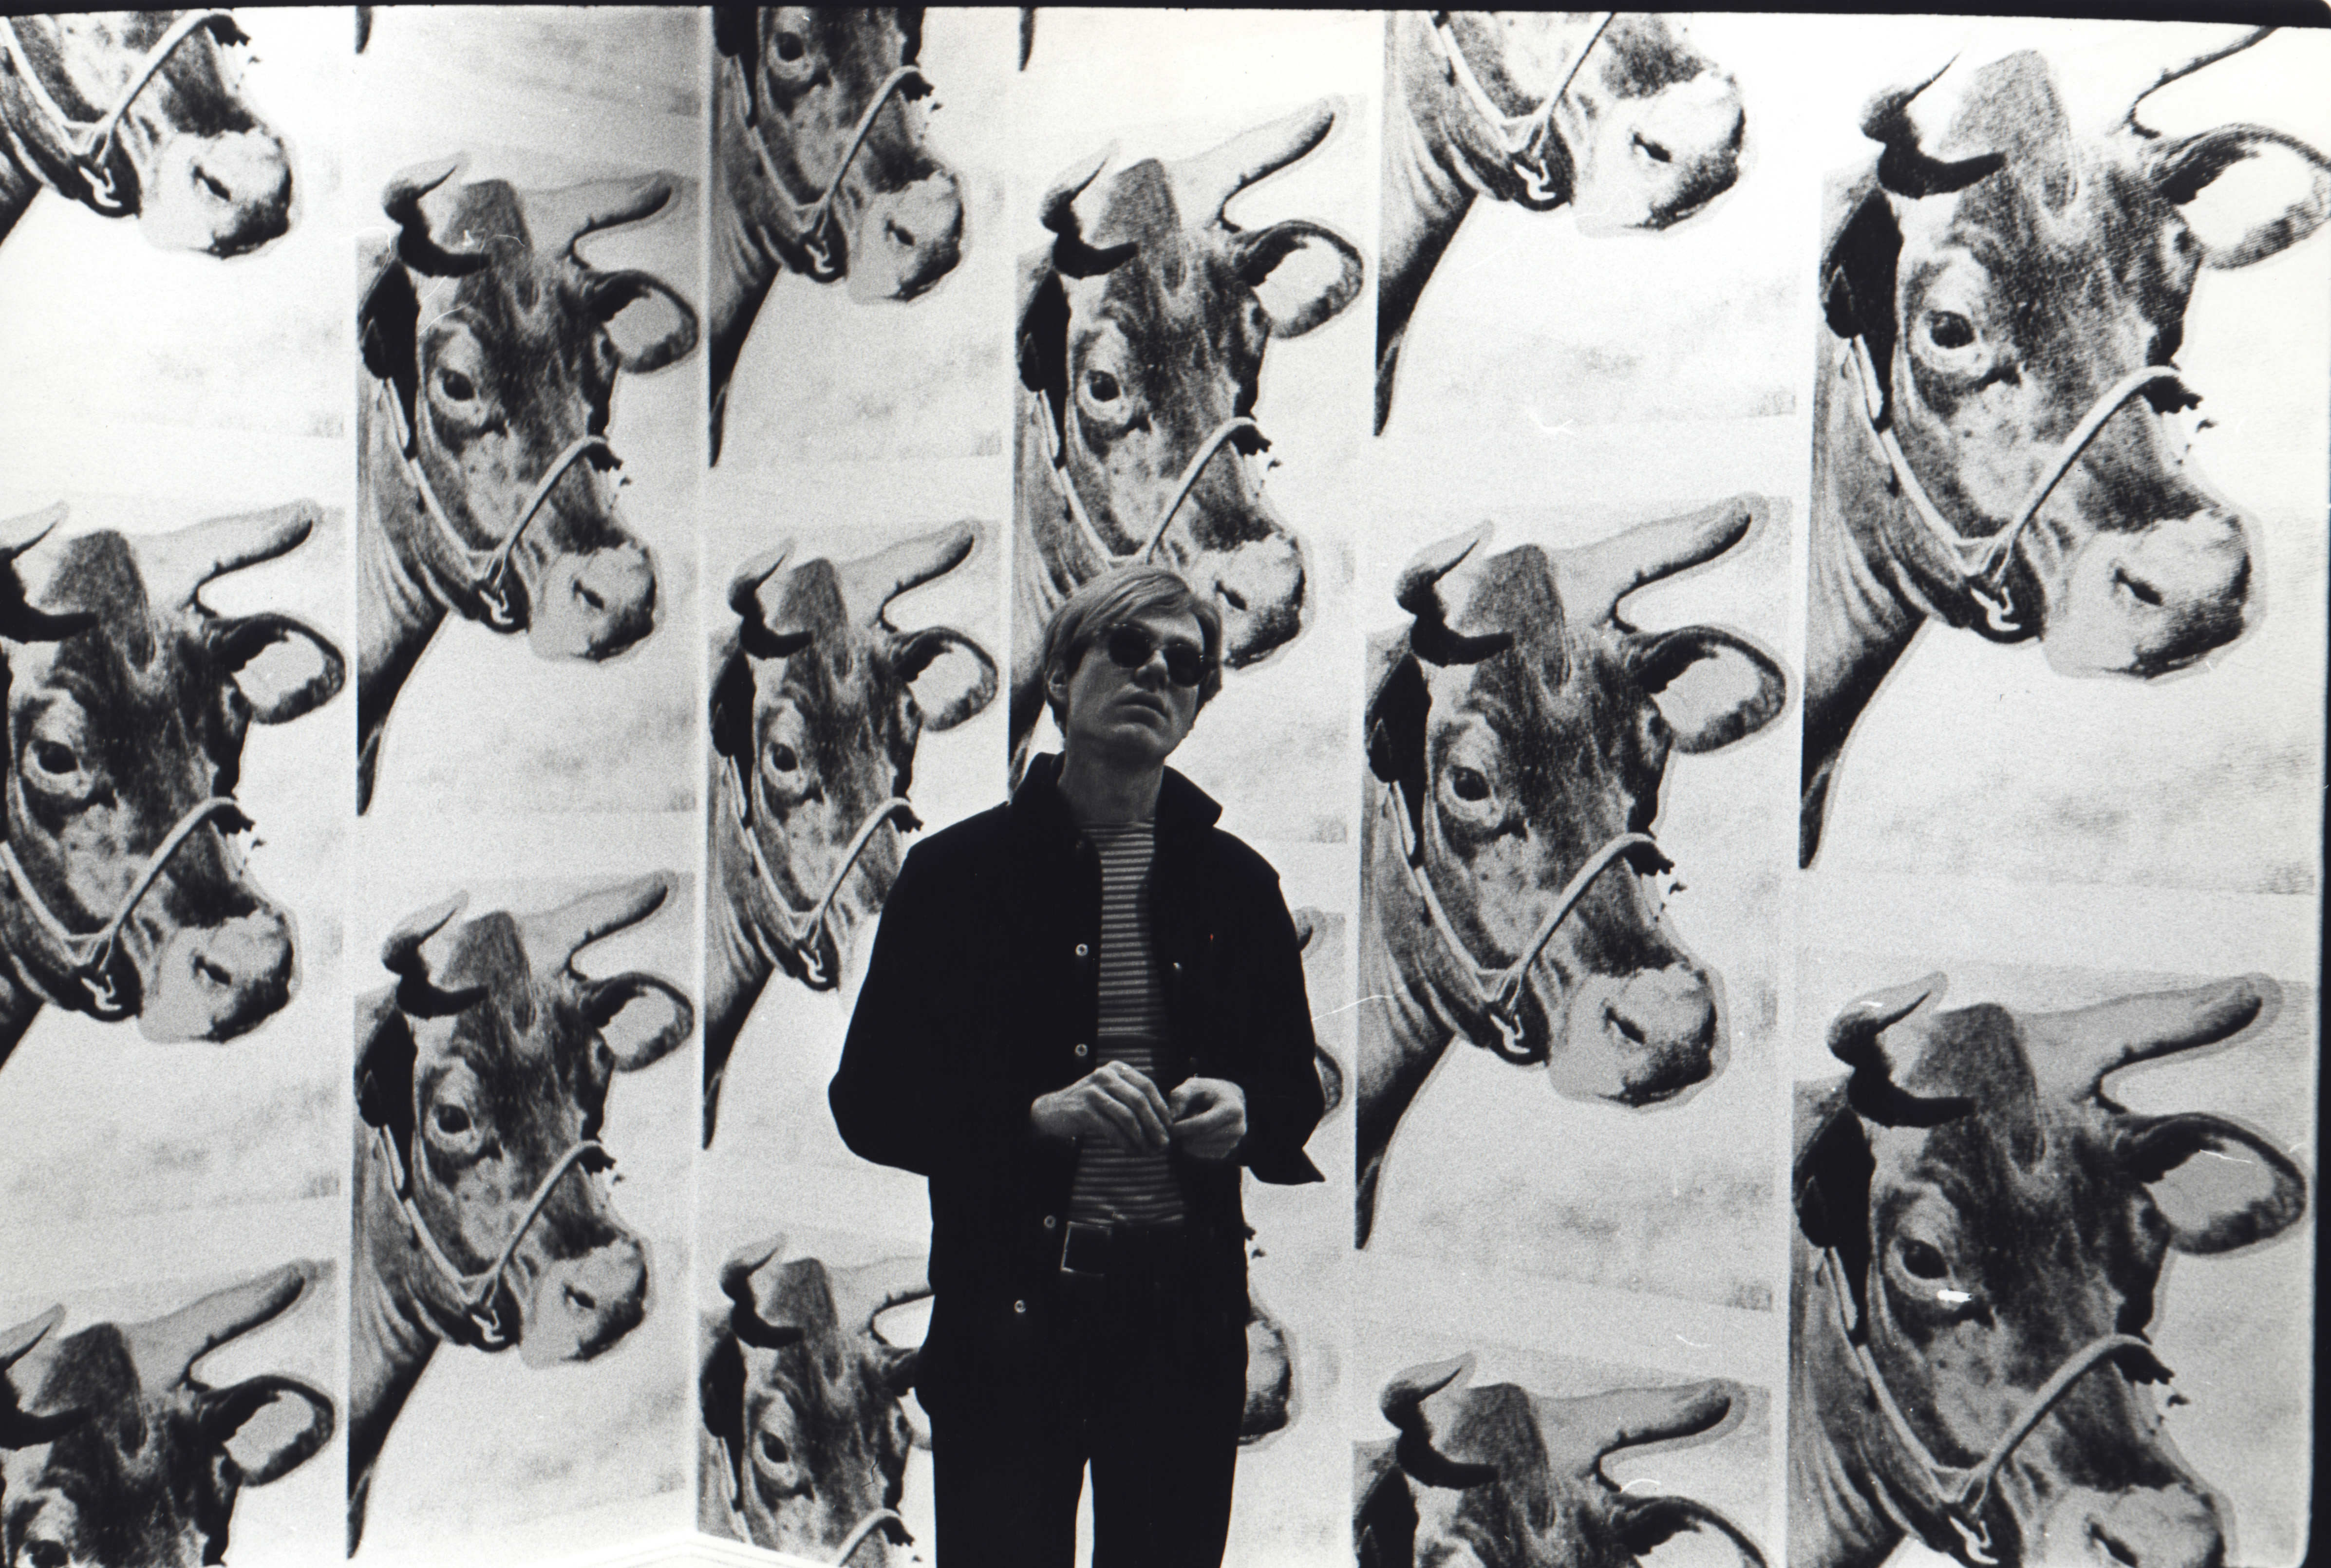 Cow Wallpaper Warhol Cow Wallpaper Exhibited at 4786x3220